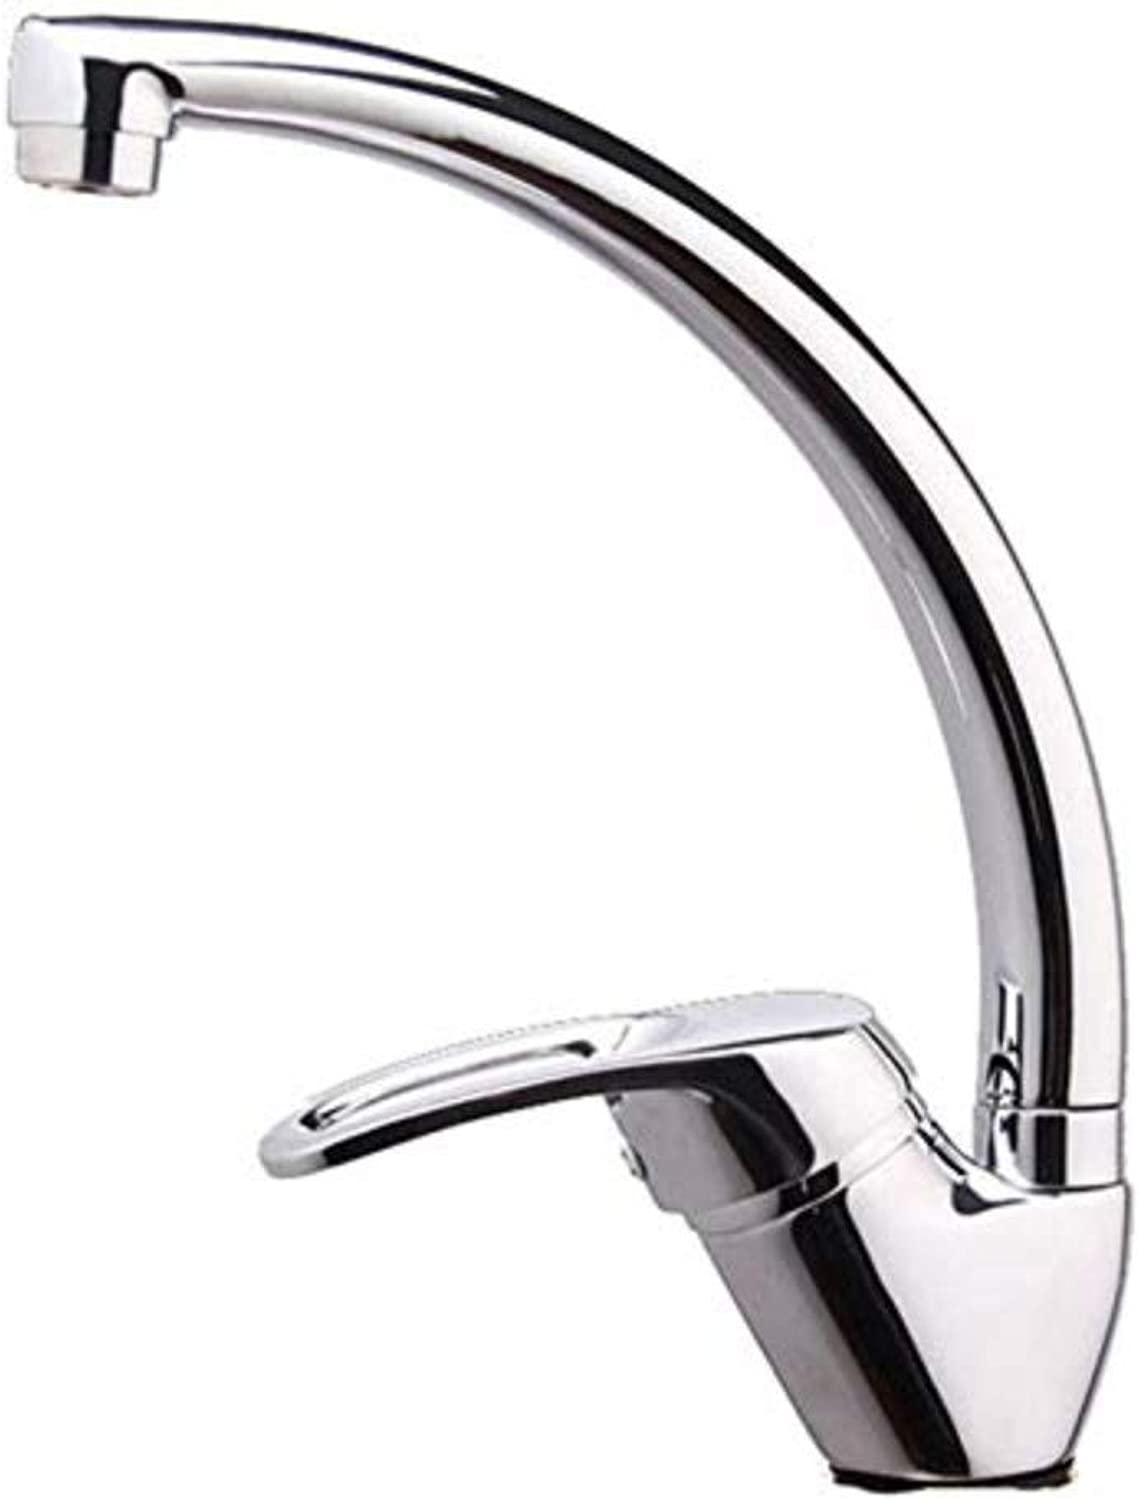 Water Taptaps Kitchen Stainless Steel Sink Copper Single Hole Hot and Cold Water Faucet